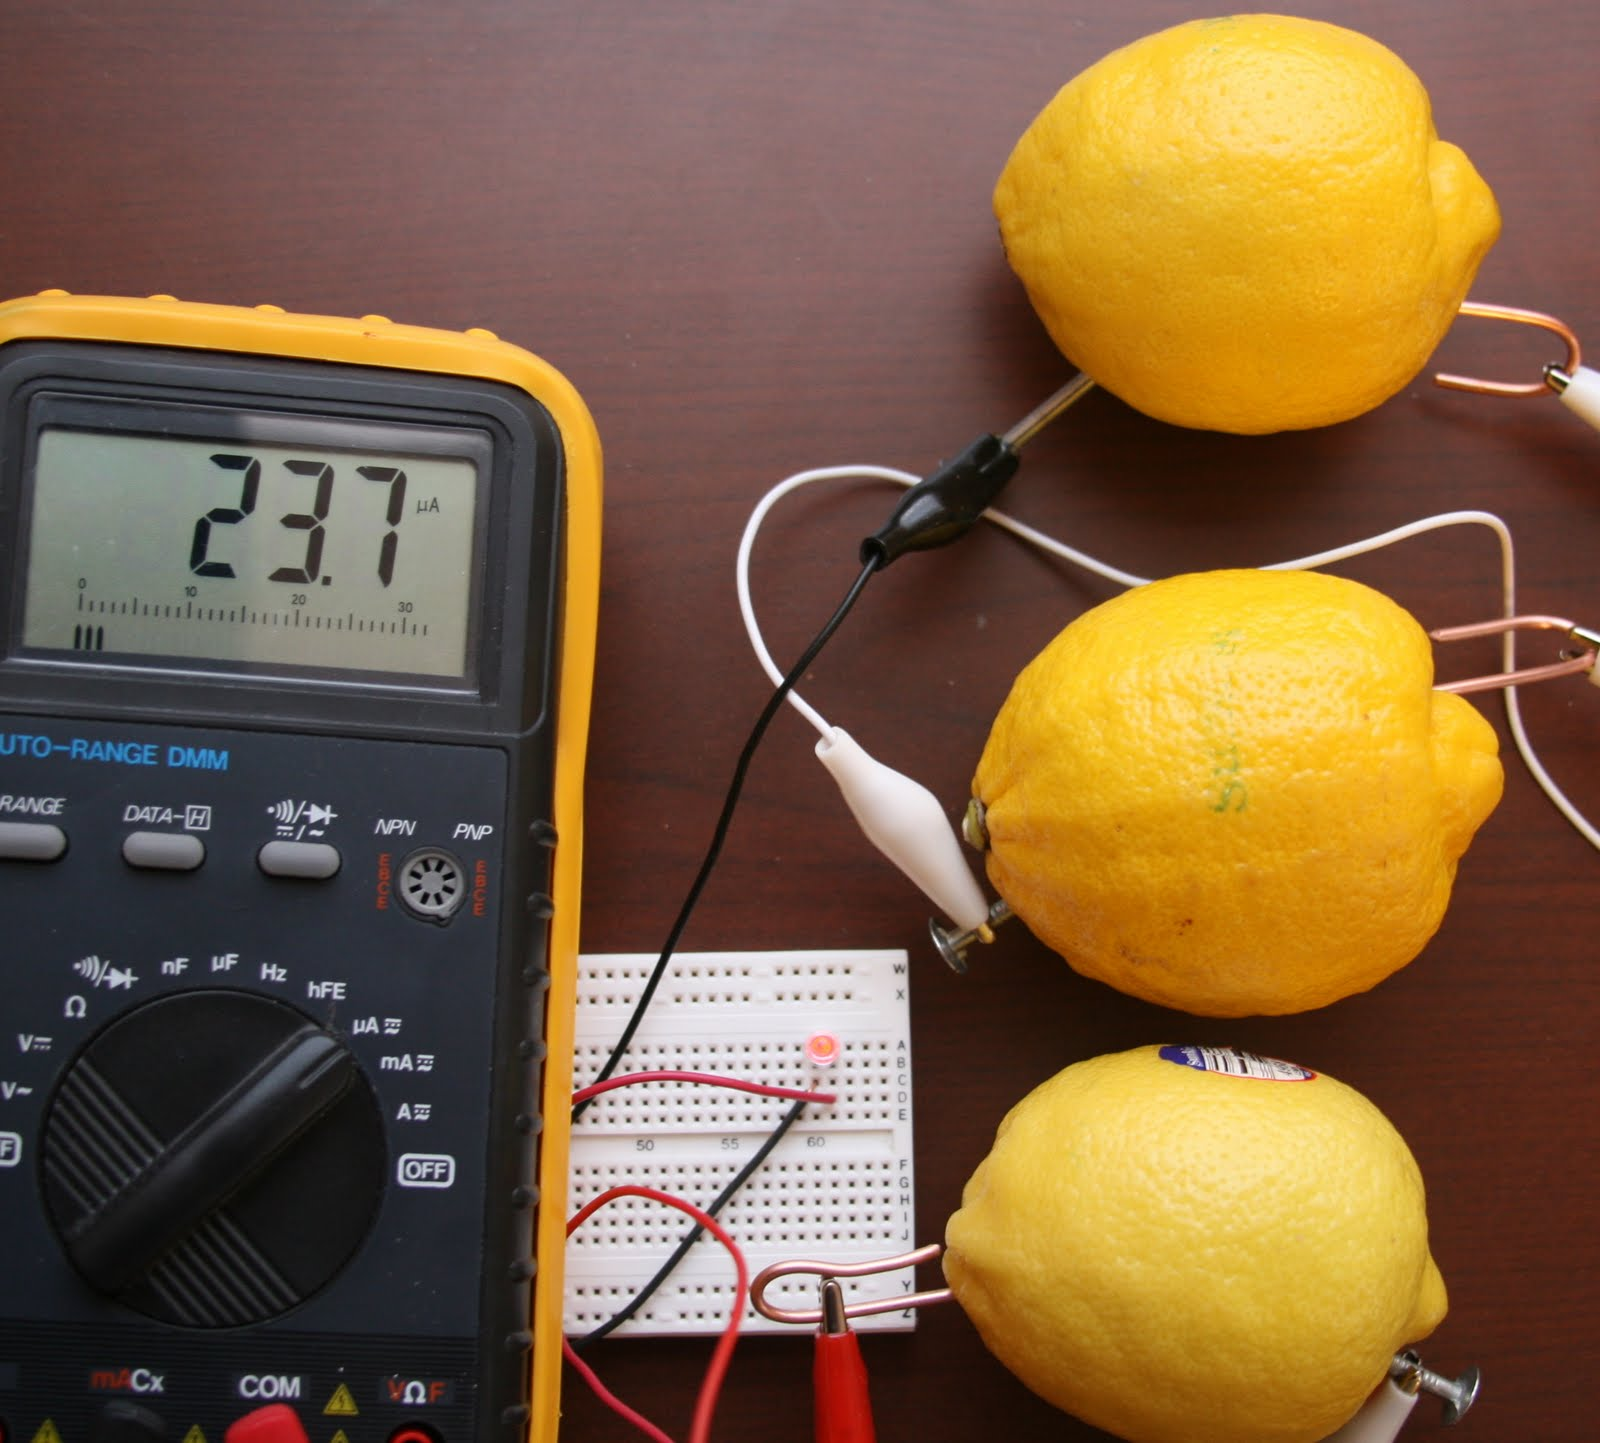 Photo p024 together with Potato Light Bulb Diagram furthermore Watch likewise Light Bulb And Battery Science Project additionally Z86syrd. on potato circuit experiment